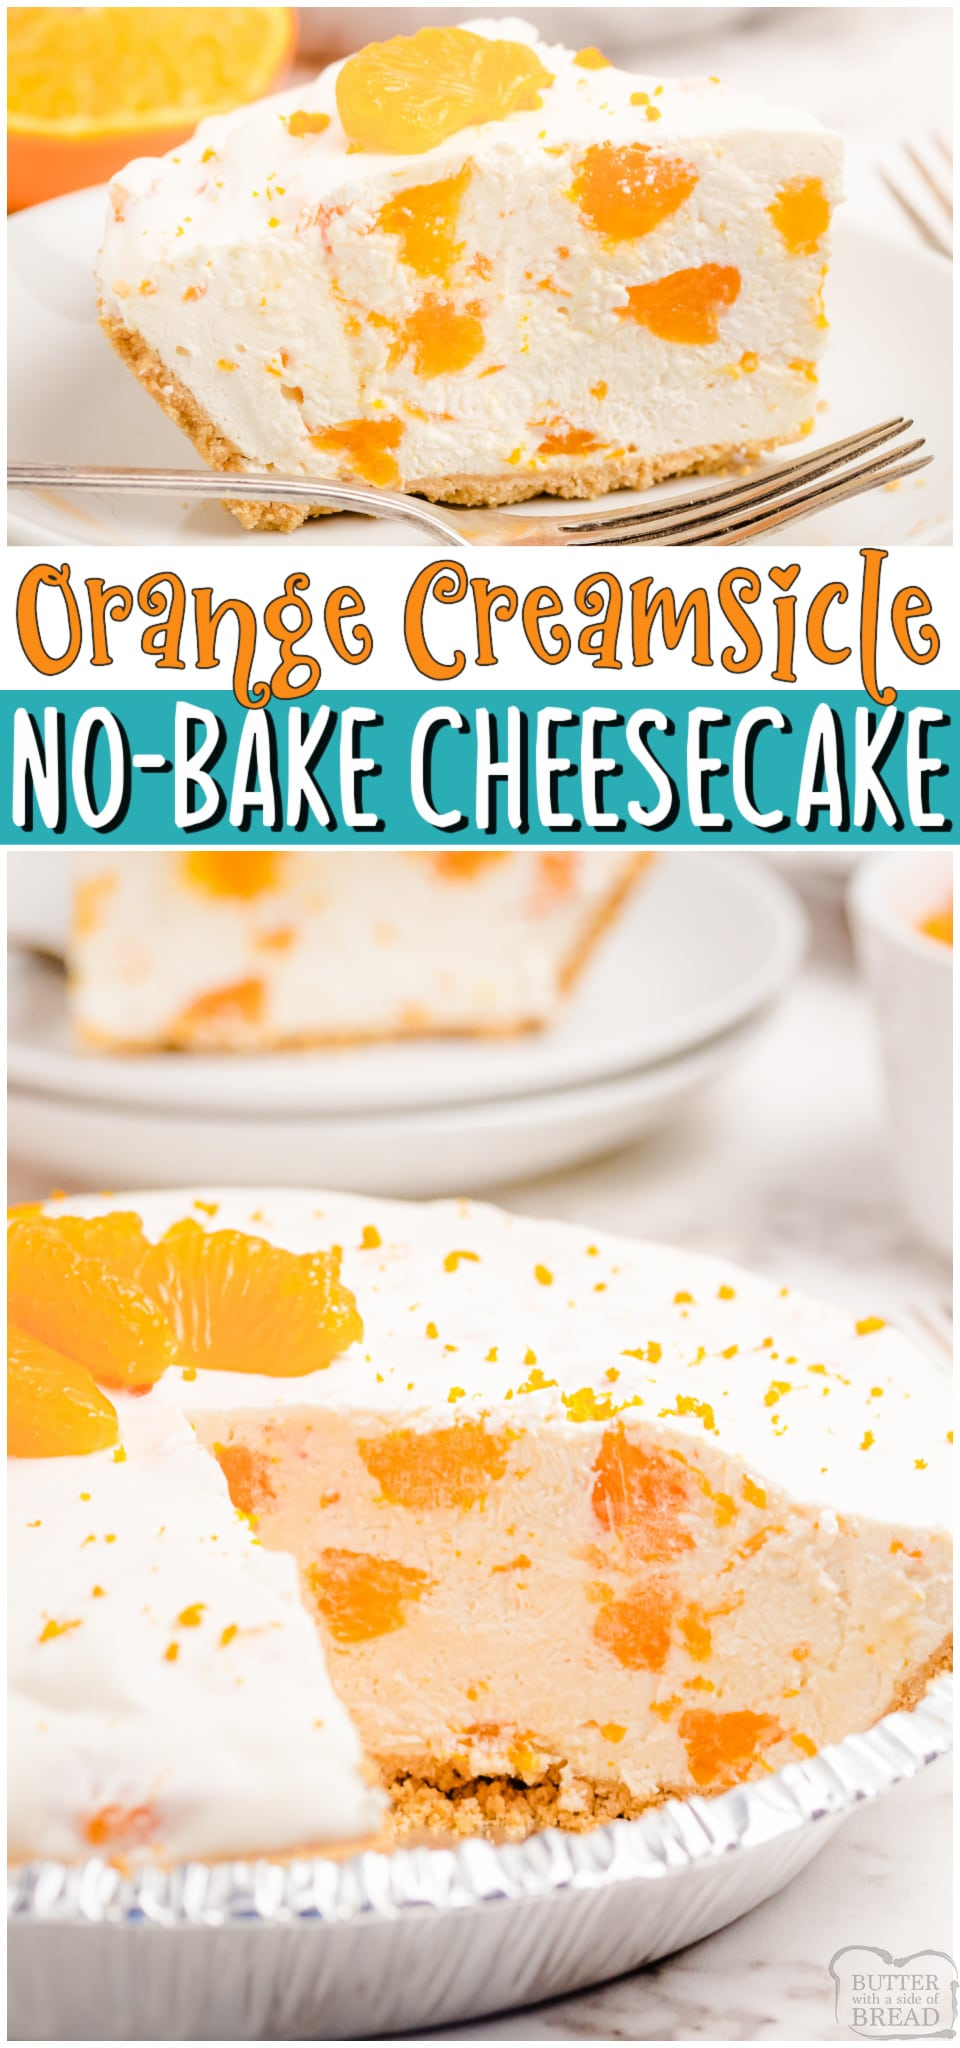 Orange Creamsicle Cheesecake made with cream cheese, oranges, whipped topping and orange juice! Simple & creamy no-bake cheesecake recipe with a lovely citrus flavor! #cheesecake #nobake #orange #dessert #easyrecipe from BUTTER WITH A SIDE OF BREAD